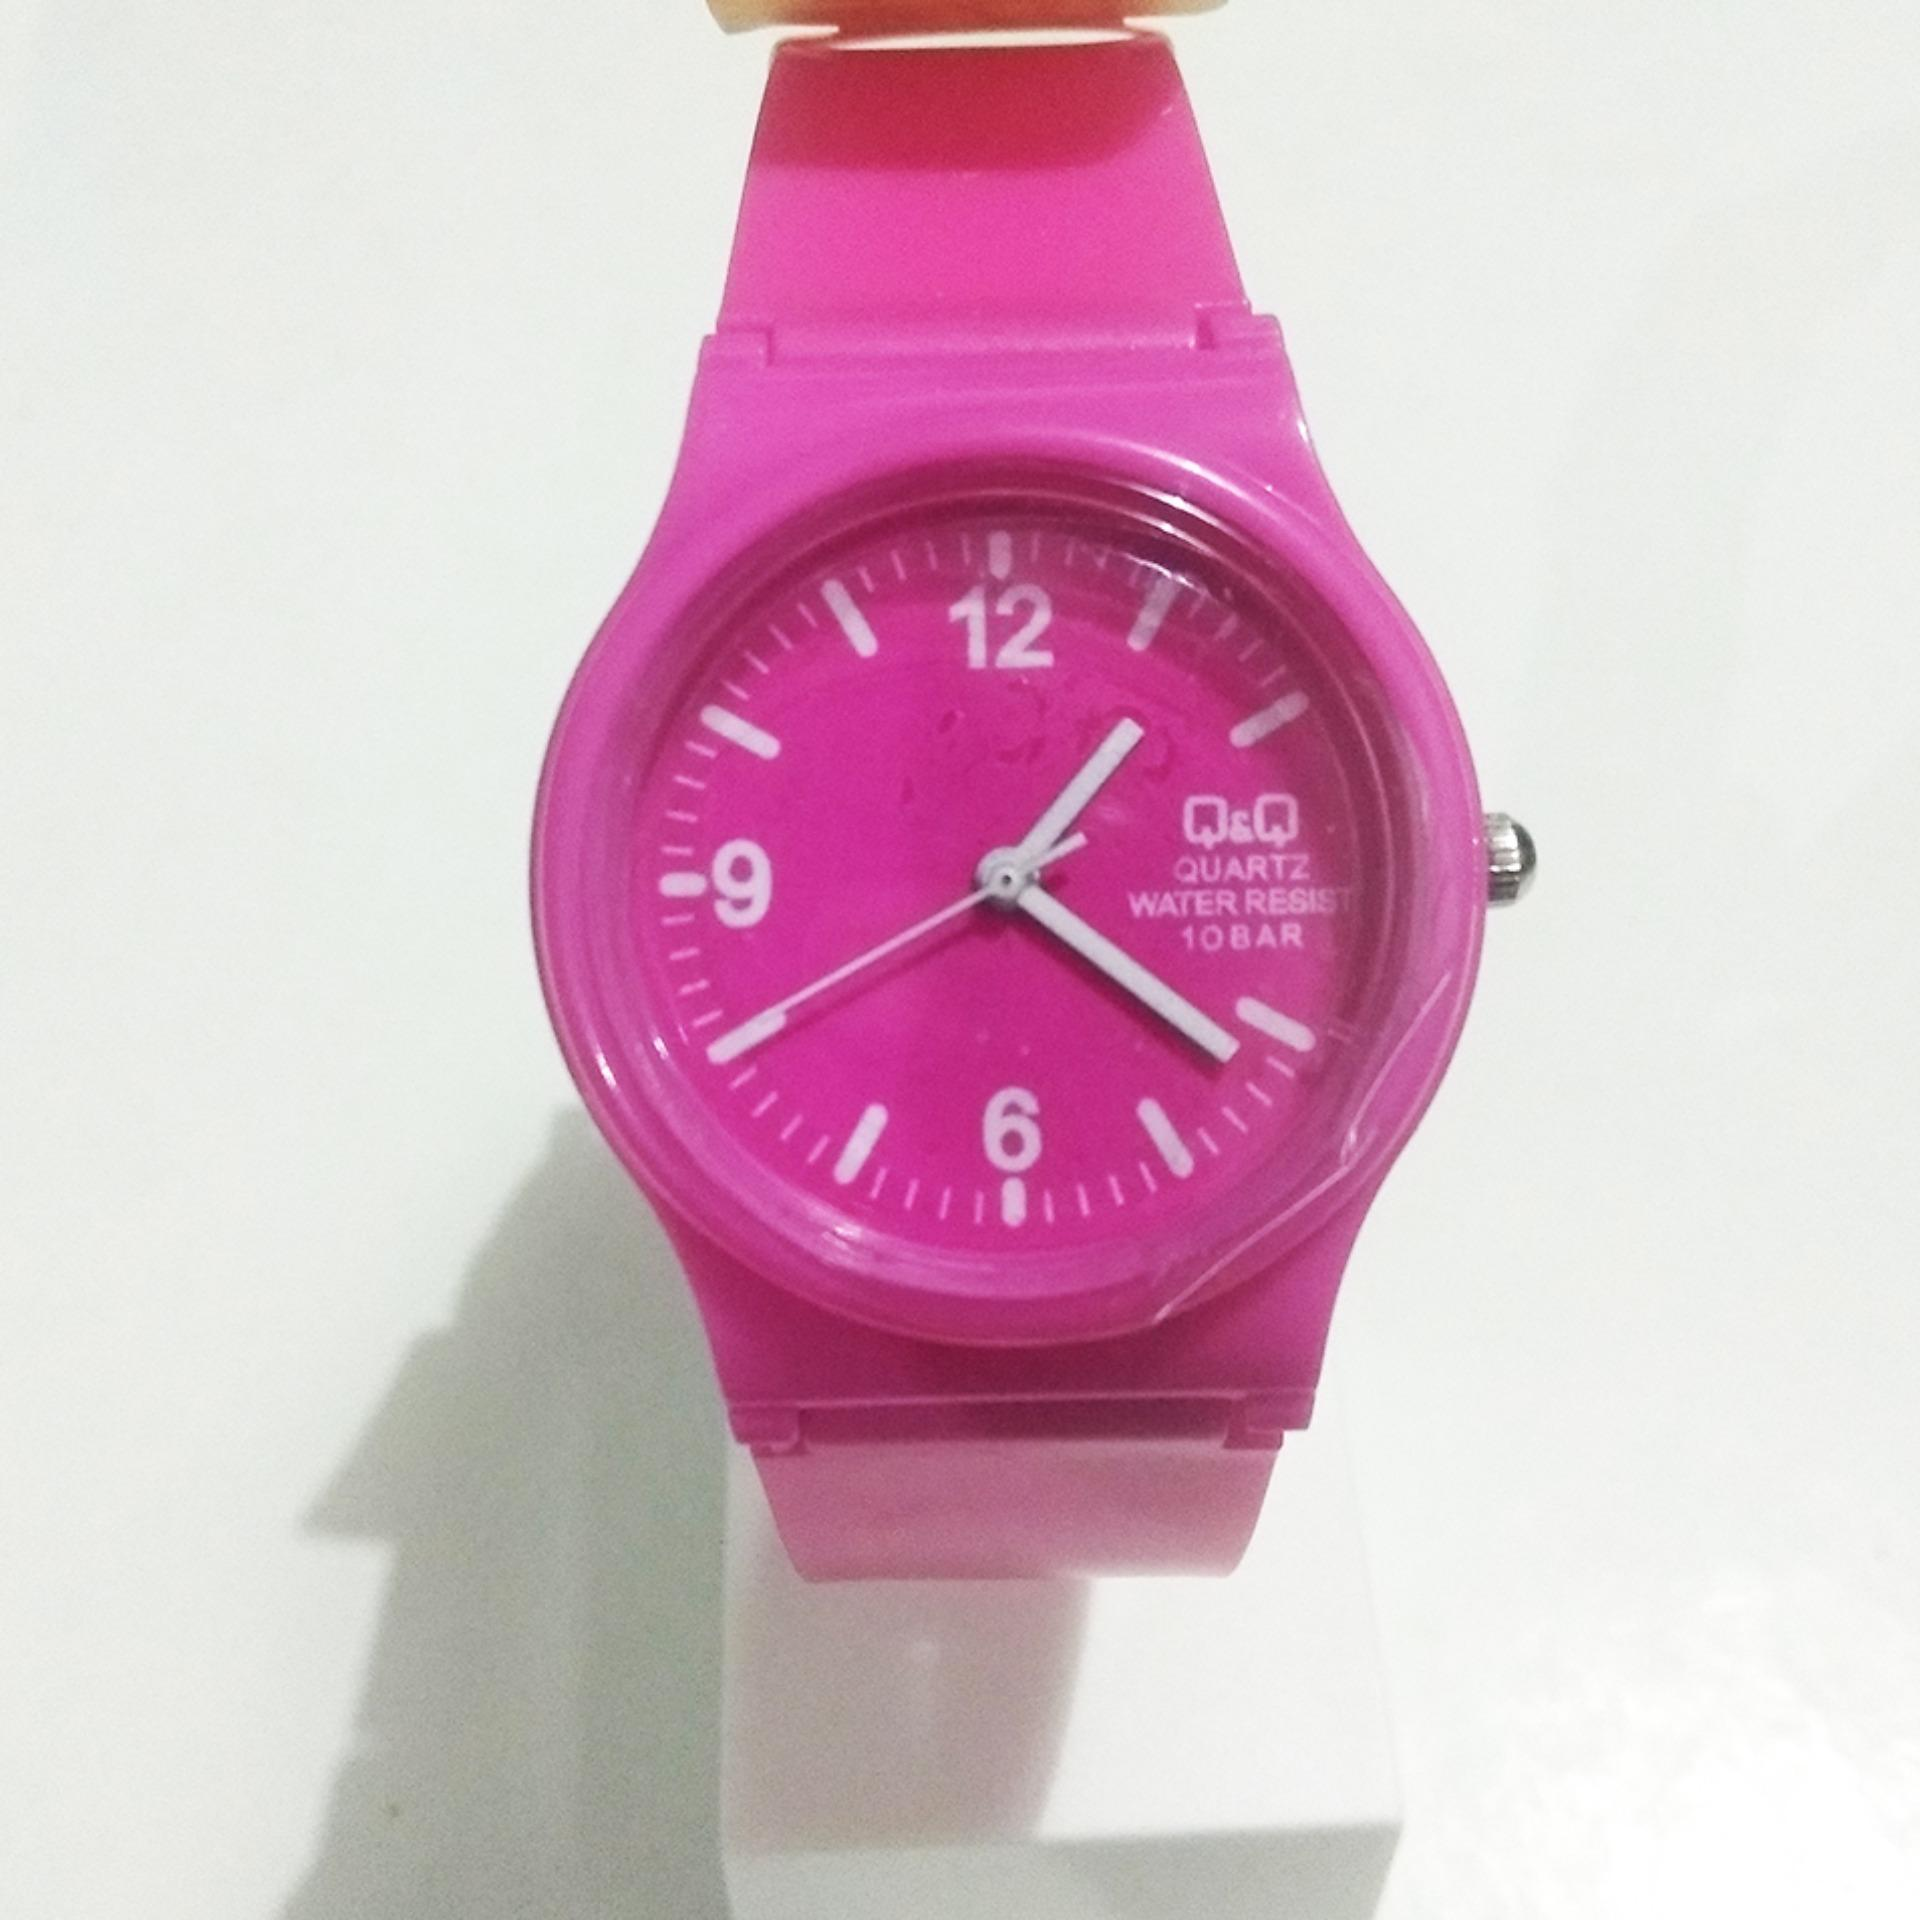 ... Q&Q Jam Tangan Fashion QQ QnQ Anak Anak Pria & Wanita New Edition Rubber Strap Model